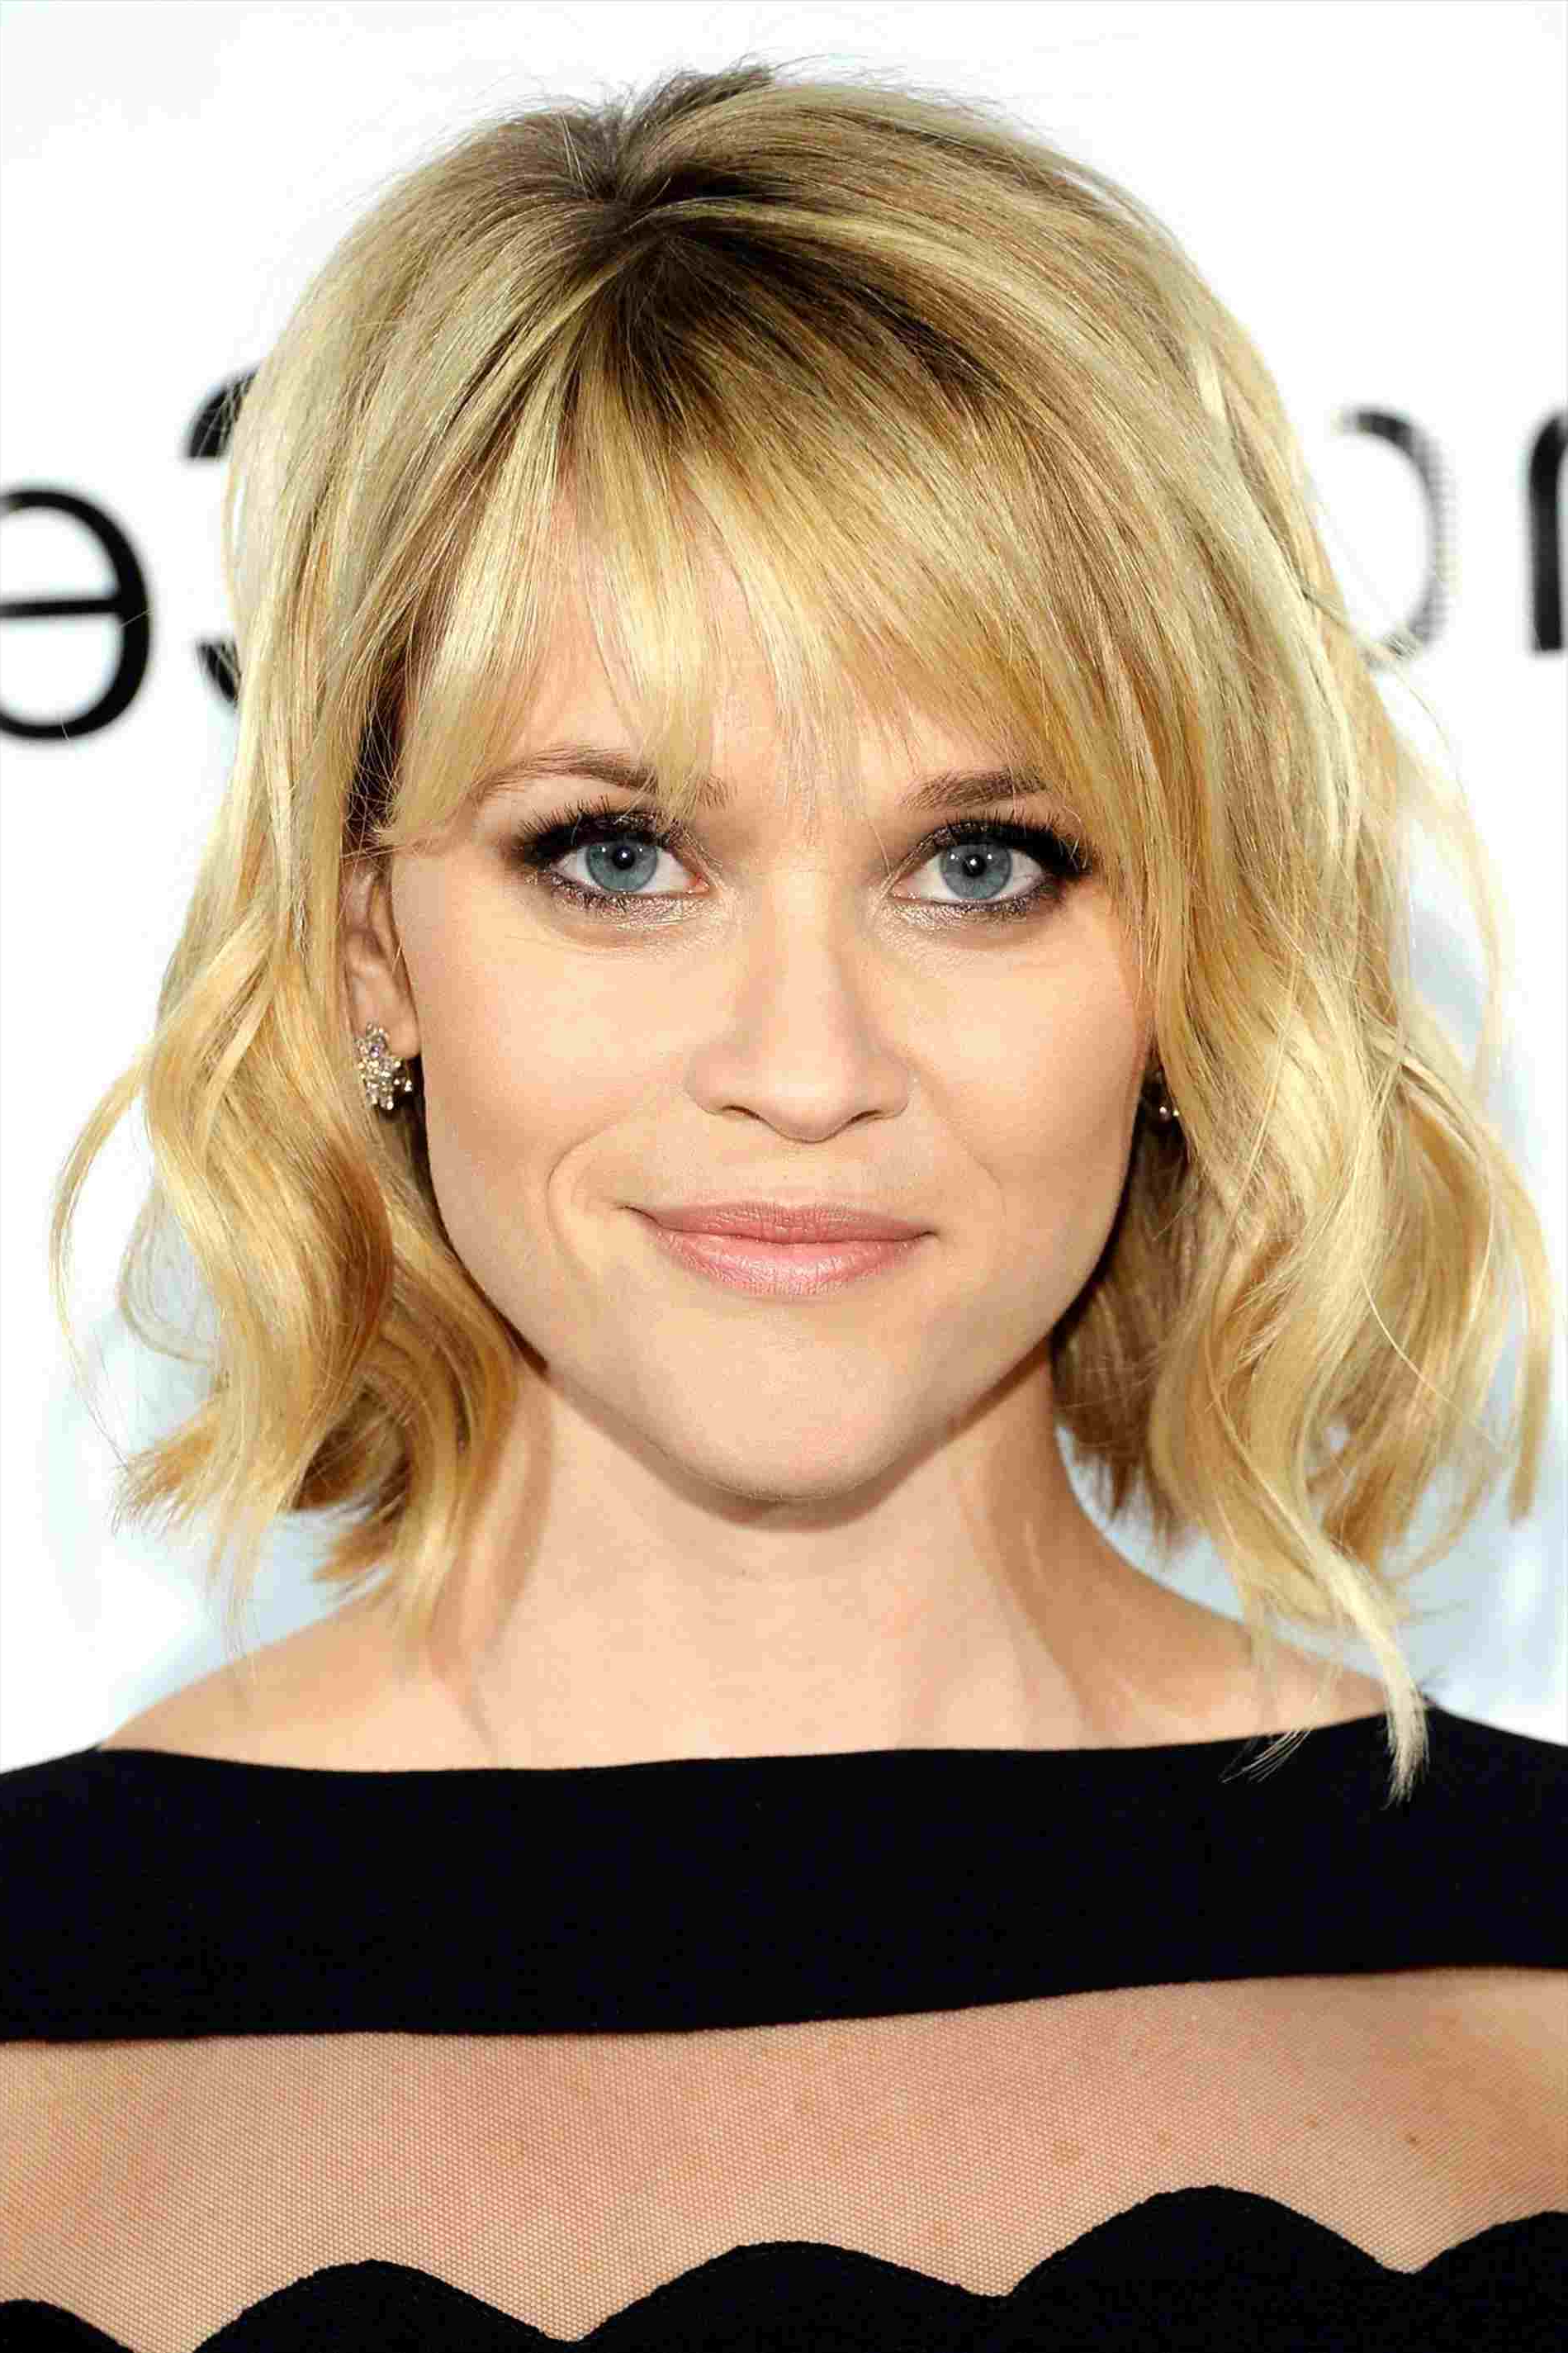 Hair Face Fresh Celebrities Rhabbasoriginalcom Styles Over With Regarding Short Haircuts For Round Faces And Glasses (View 22 of 25)